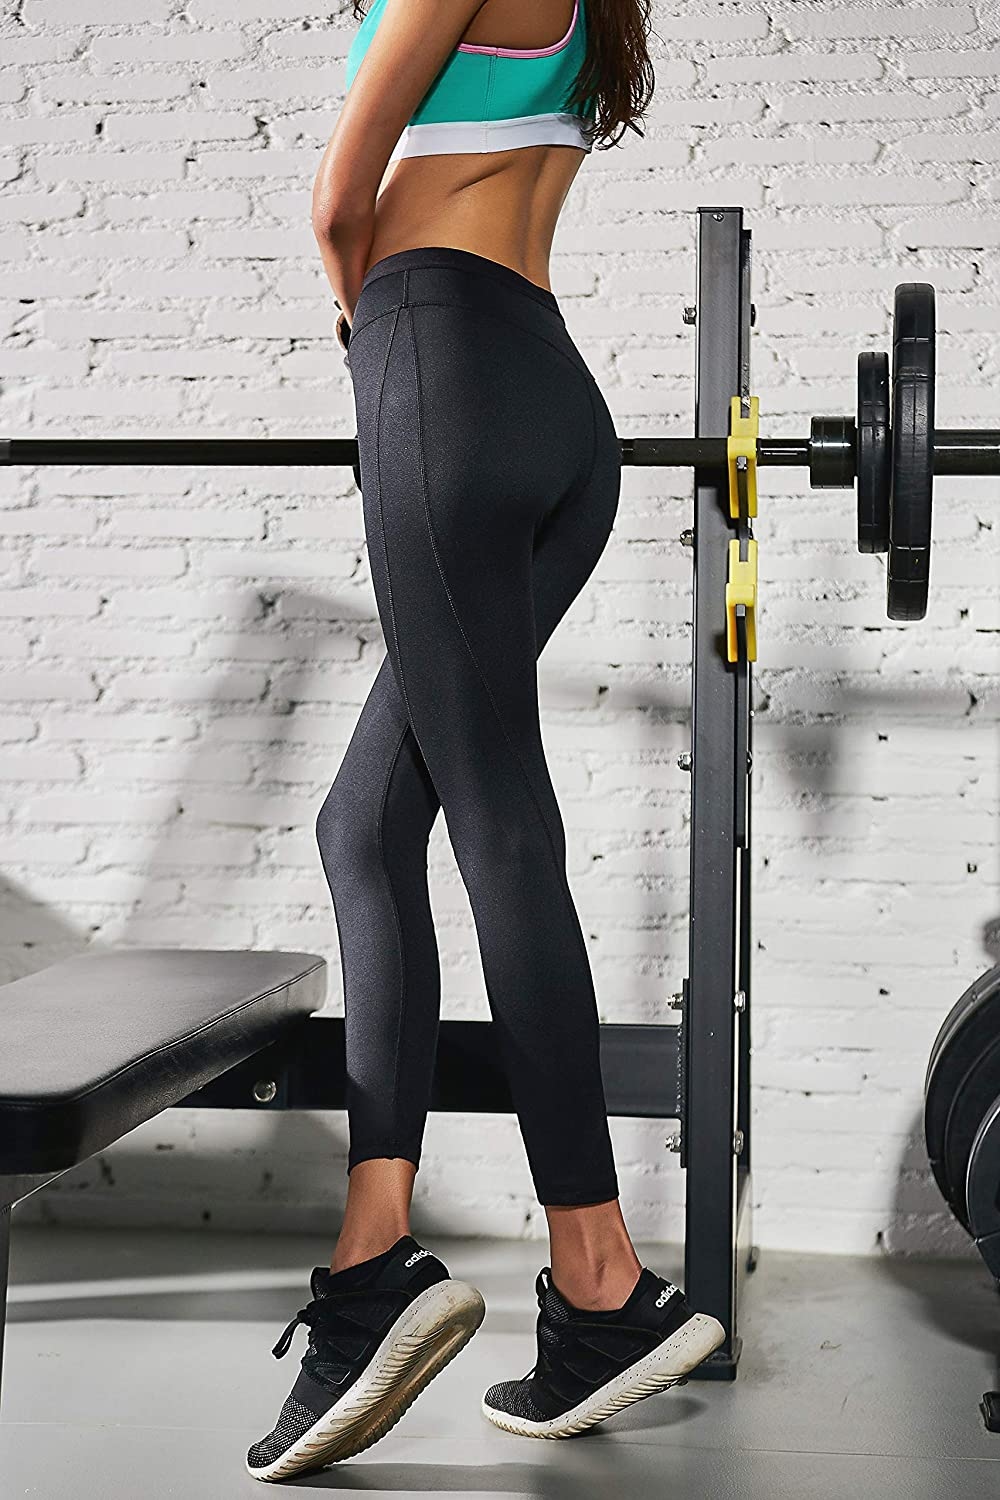 acd7ca5ad30d4 Curve Muse Women Yoga Pants Leggings Tights Workout Activeware High Waist 2  pkg